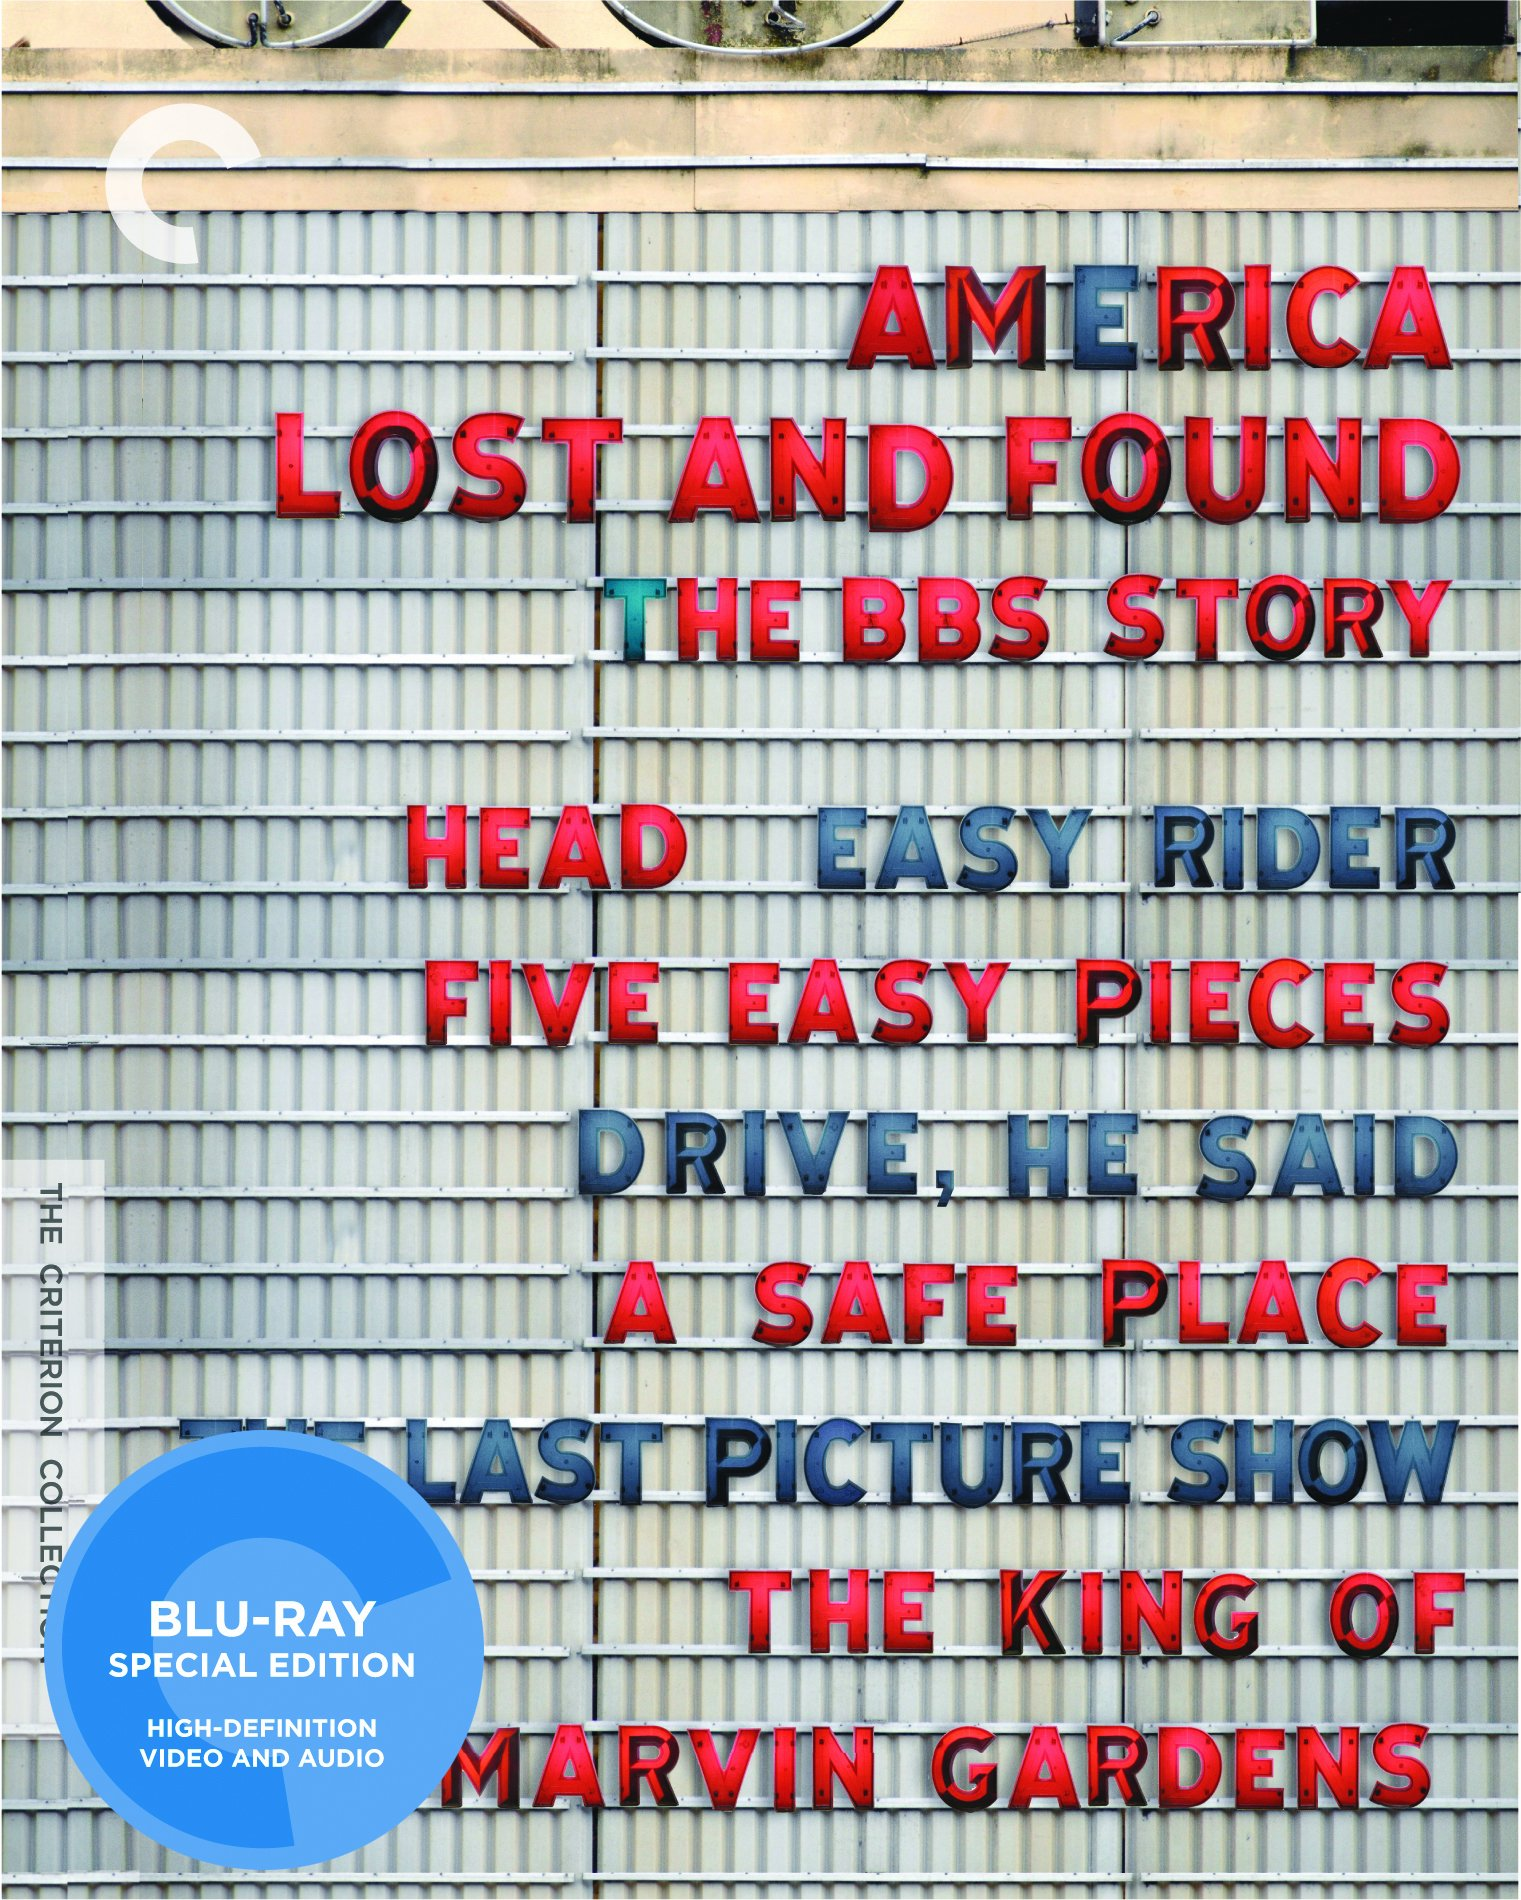 America Lost and Found: The BBS Story (Head / Easy Rider / Five Easy Pieces / Drive, He Said / The Last Picture Show / The King of Marvin Gardens / A Safe Place) (The Criterion Collection)[Blu-ray] by Criterion